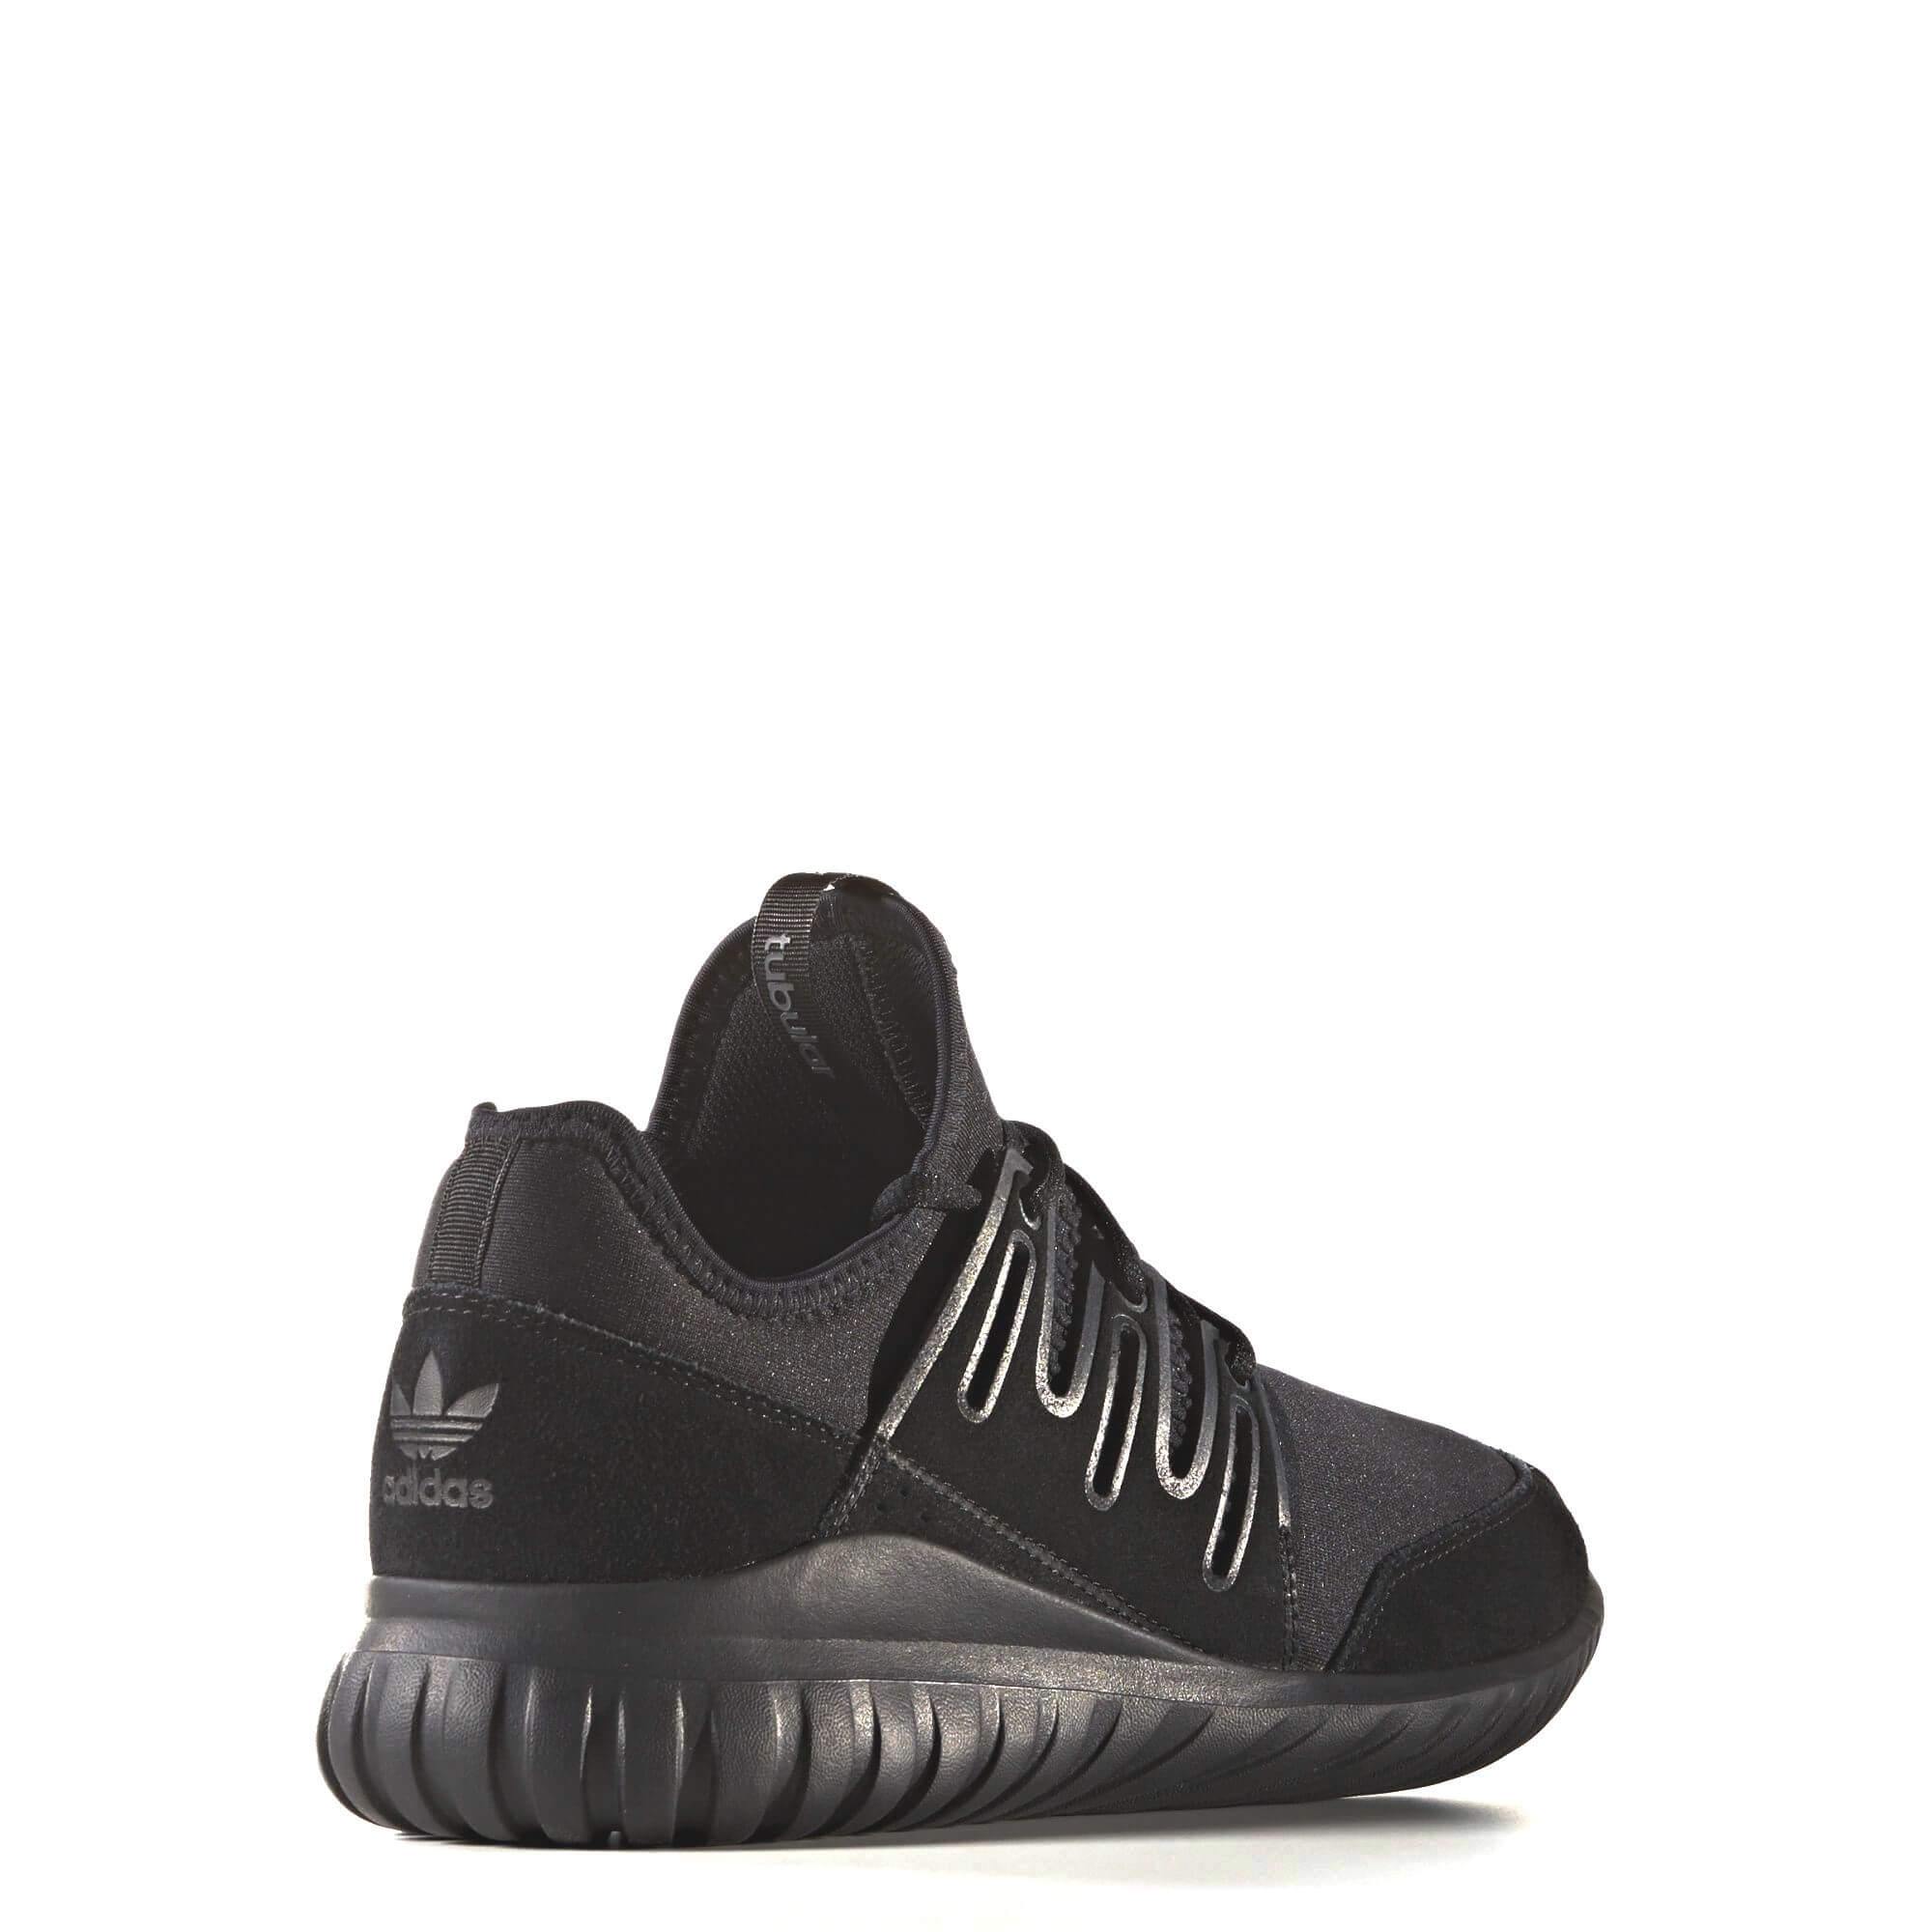 wholesale dealer 6ec4f e7e13 Adidas Originals Tubular Radial (S80115) CBLACK/CBLACK ...